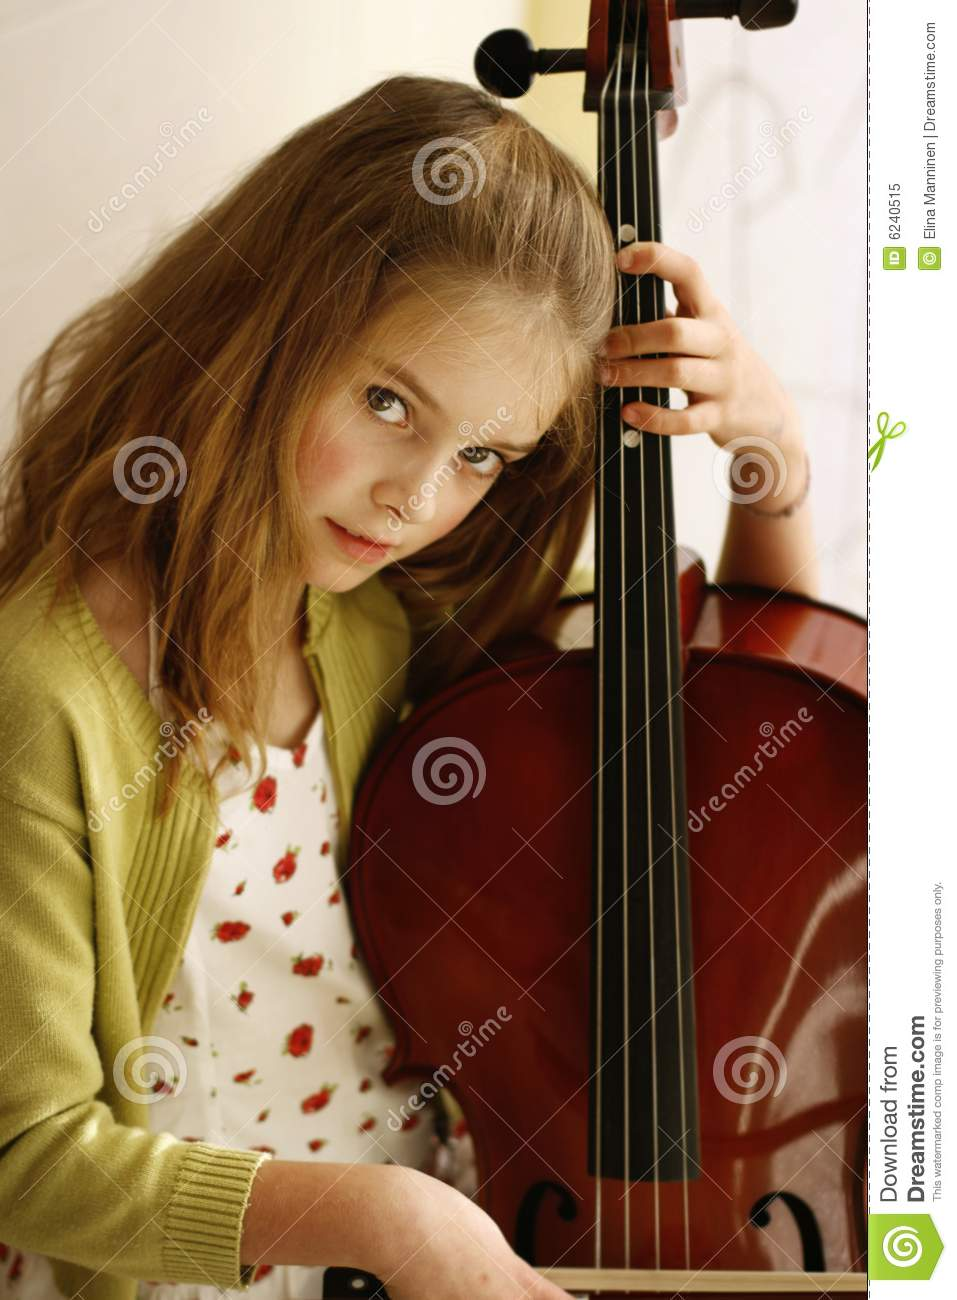 Girl playing cello stock image. Image of happy, caucasian ...